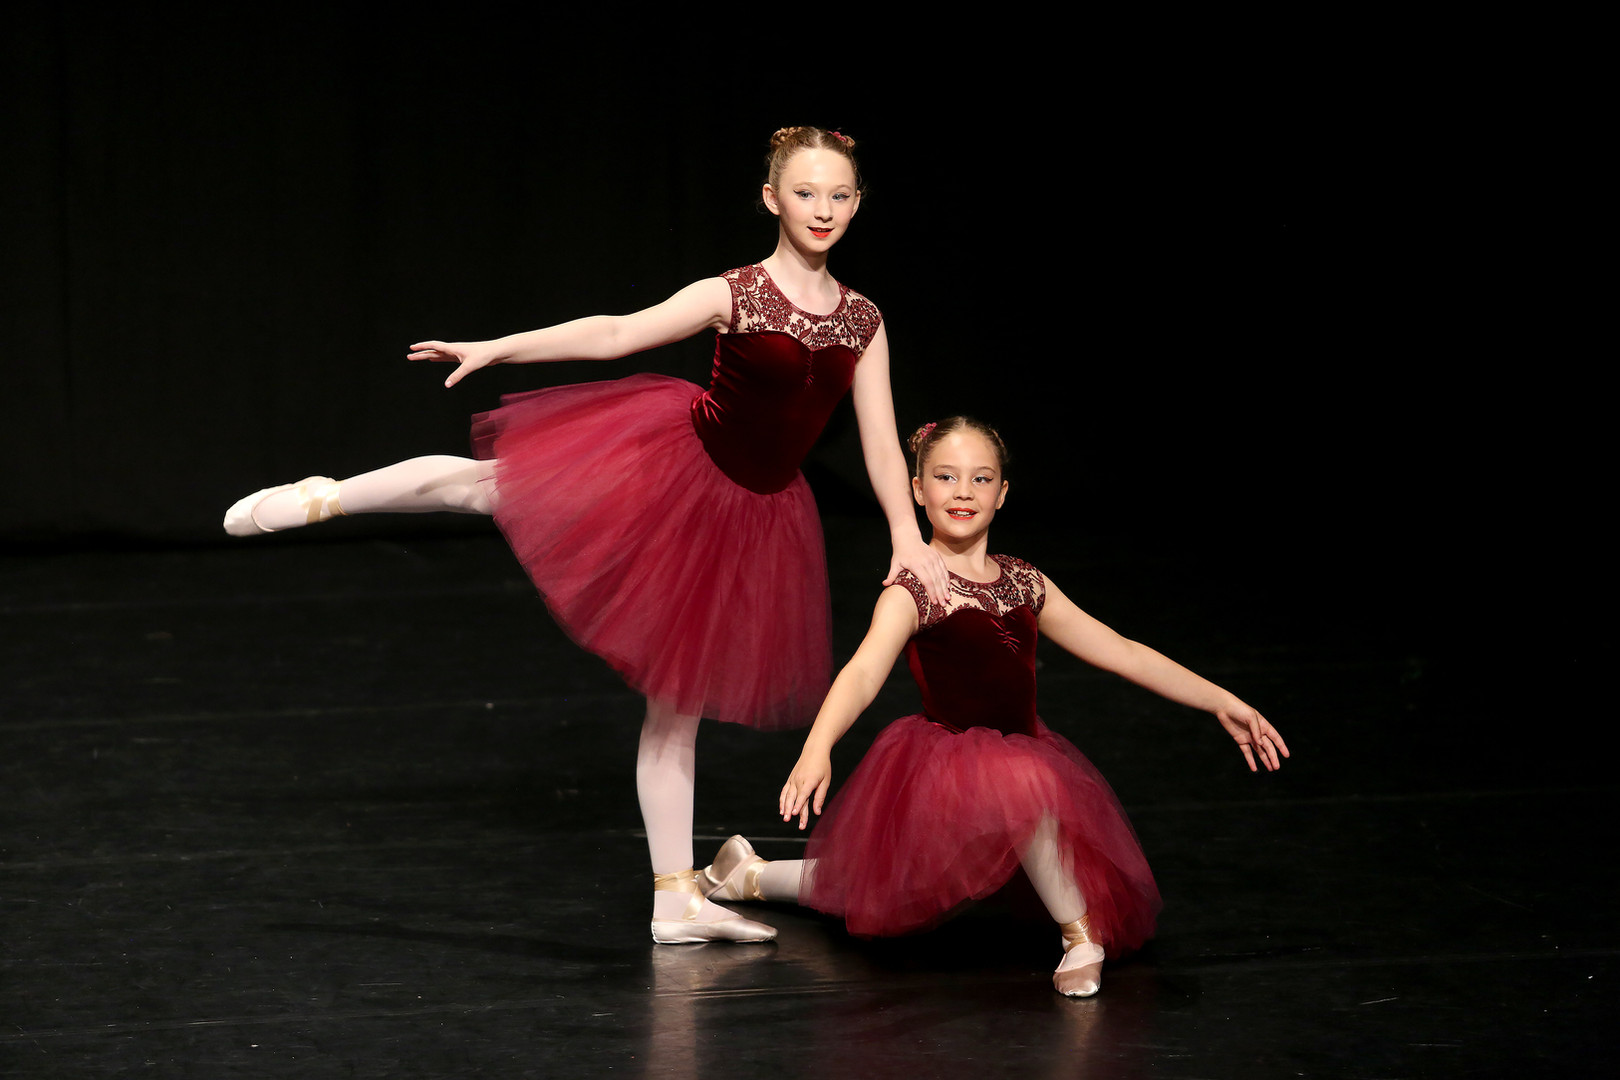 Milly & Imogen, Age 11